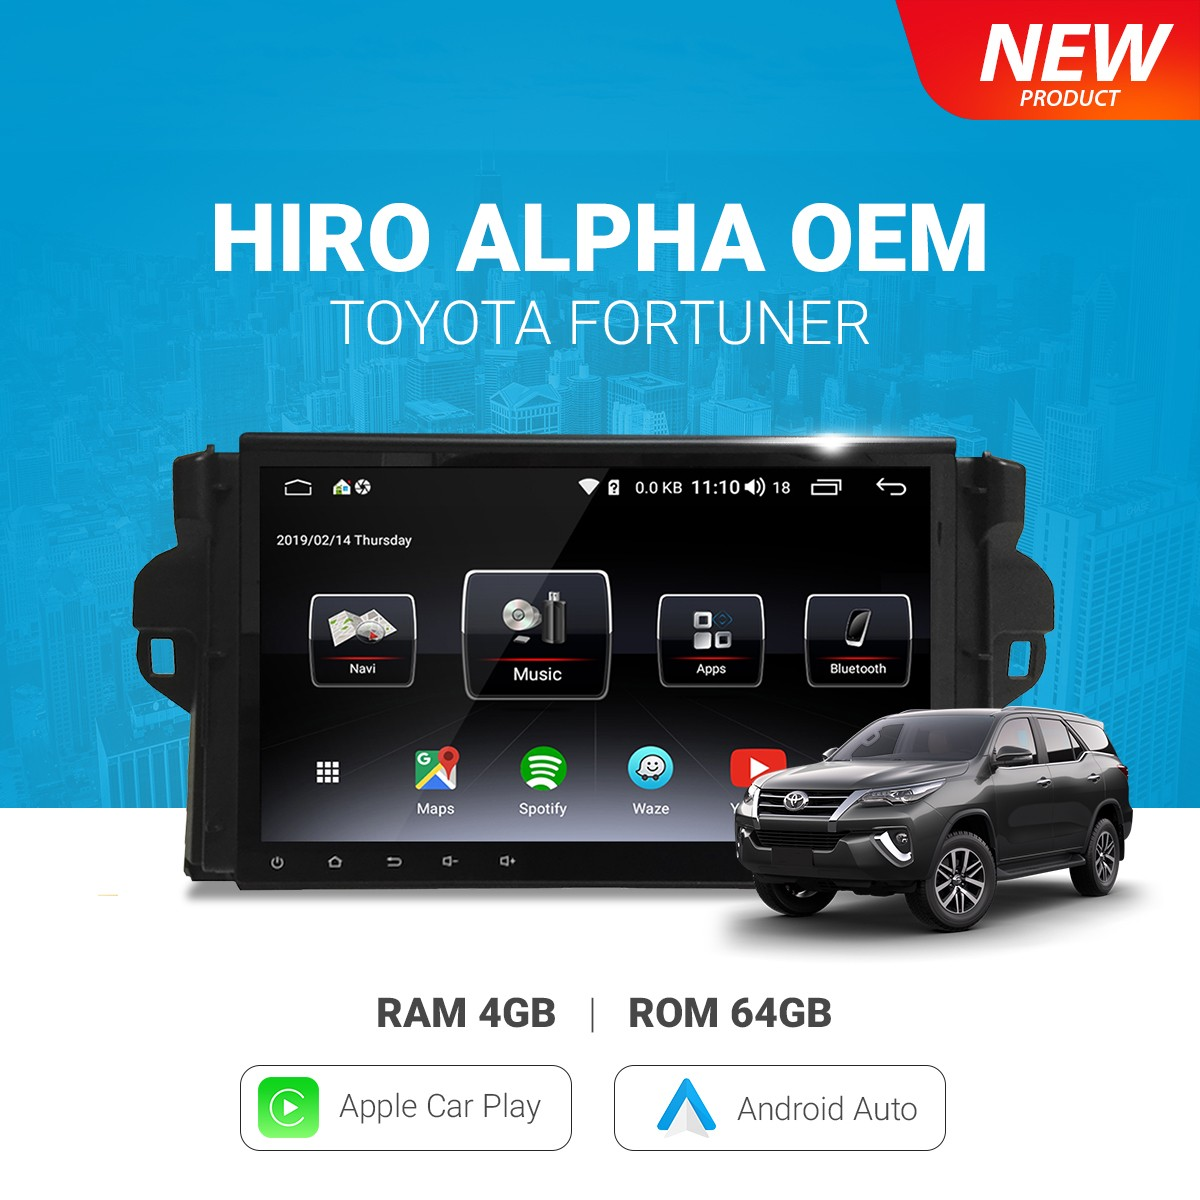 HIRO ALPHA OEM TOYOTA FORTUNER - HEAD UNIT ANDROID 2 DIN